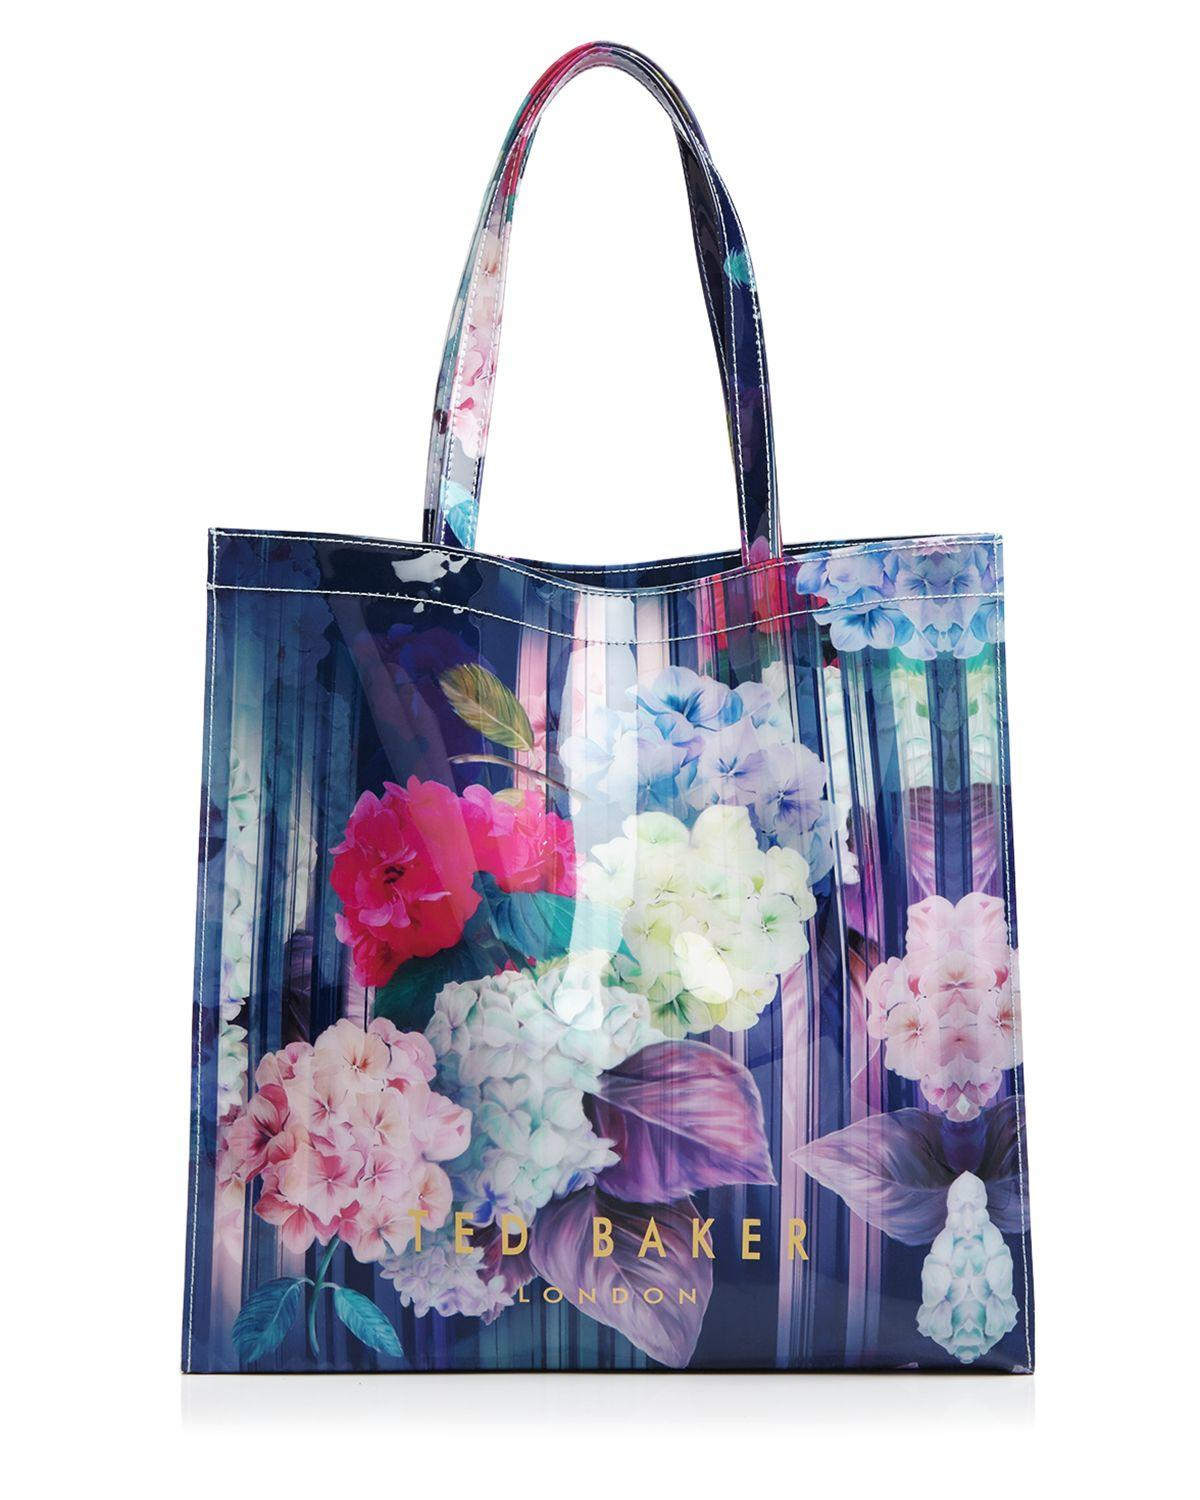 39bcc1147f7e8 Lyst - Ted Baker Hydrangea Haze Large Icon Tote in Blue